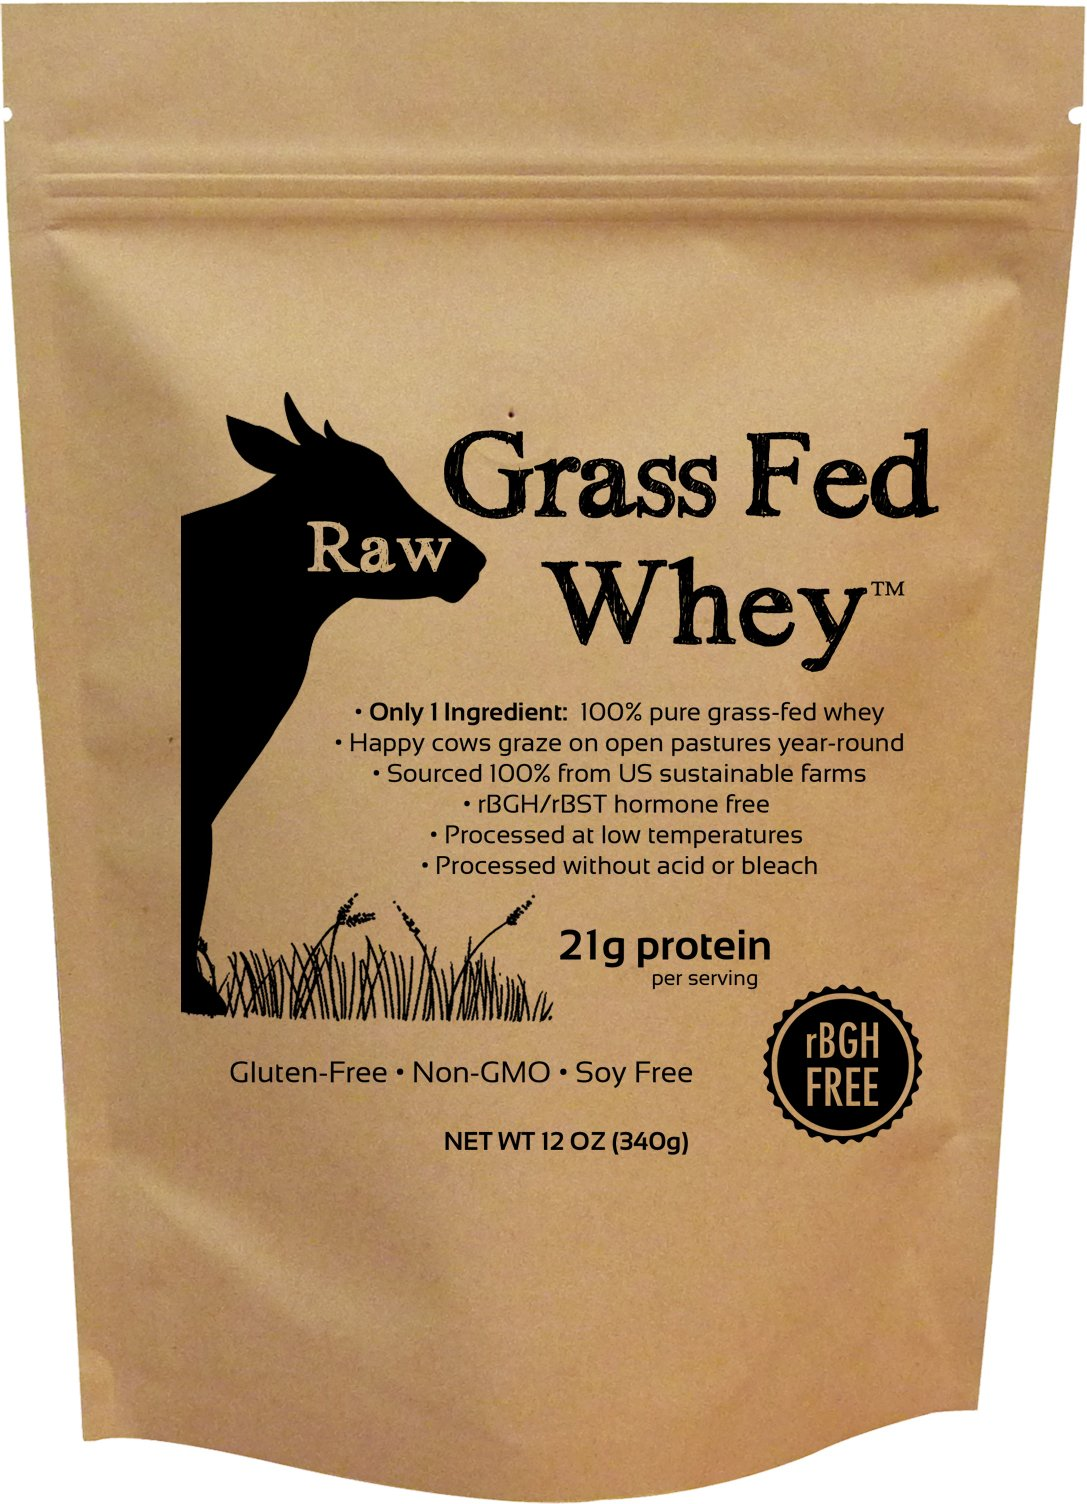 Raw Grass Fed Whey - Happy Healthy Cows, COLD PROCESSED Undenatured 100% Grass Fed Whey Protein Powder, GMO-Free + rBGH Free + Soy Free + Gluten Free + No Added Sugar, Unflavored, Unsweetened (12 OZ) by Raw Organic Whey